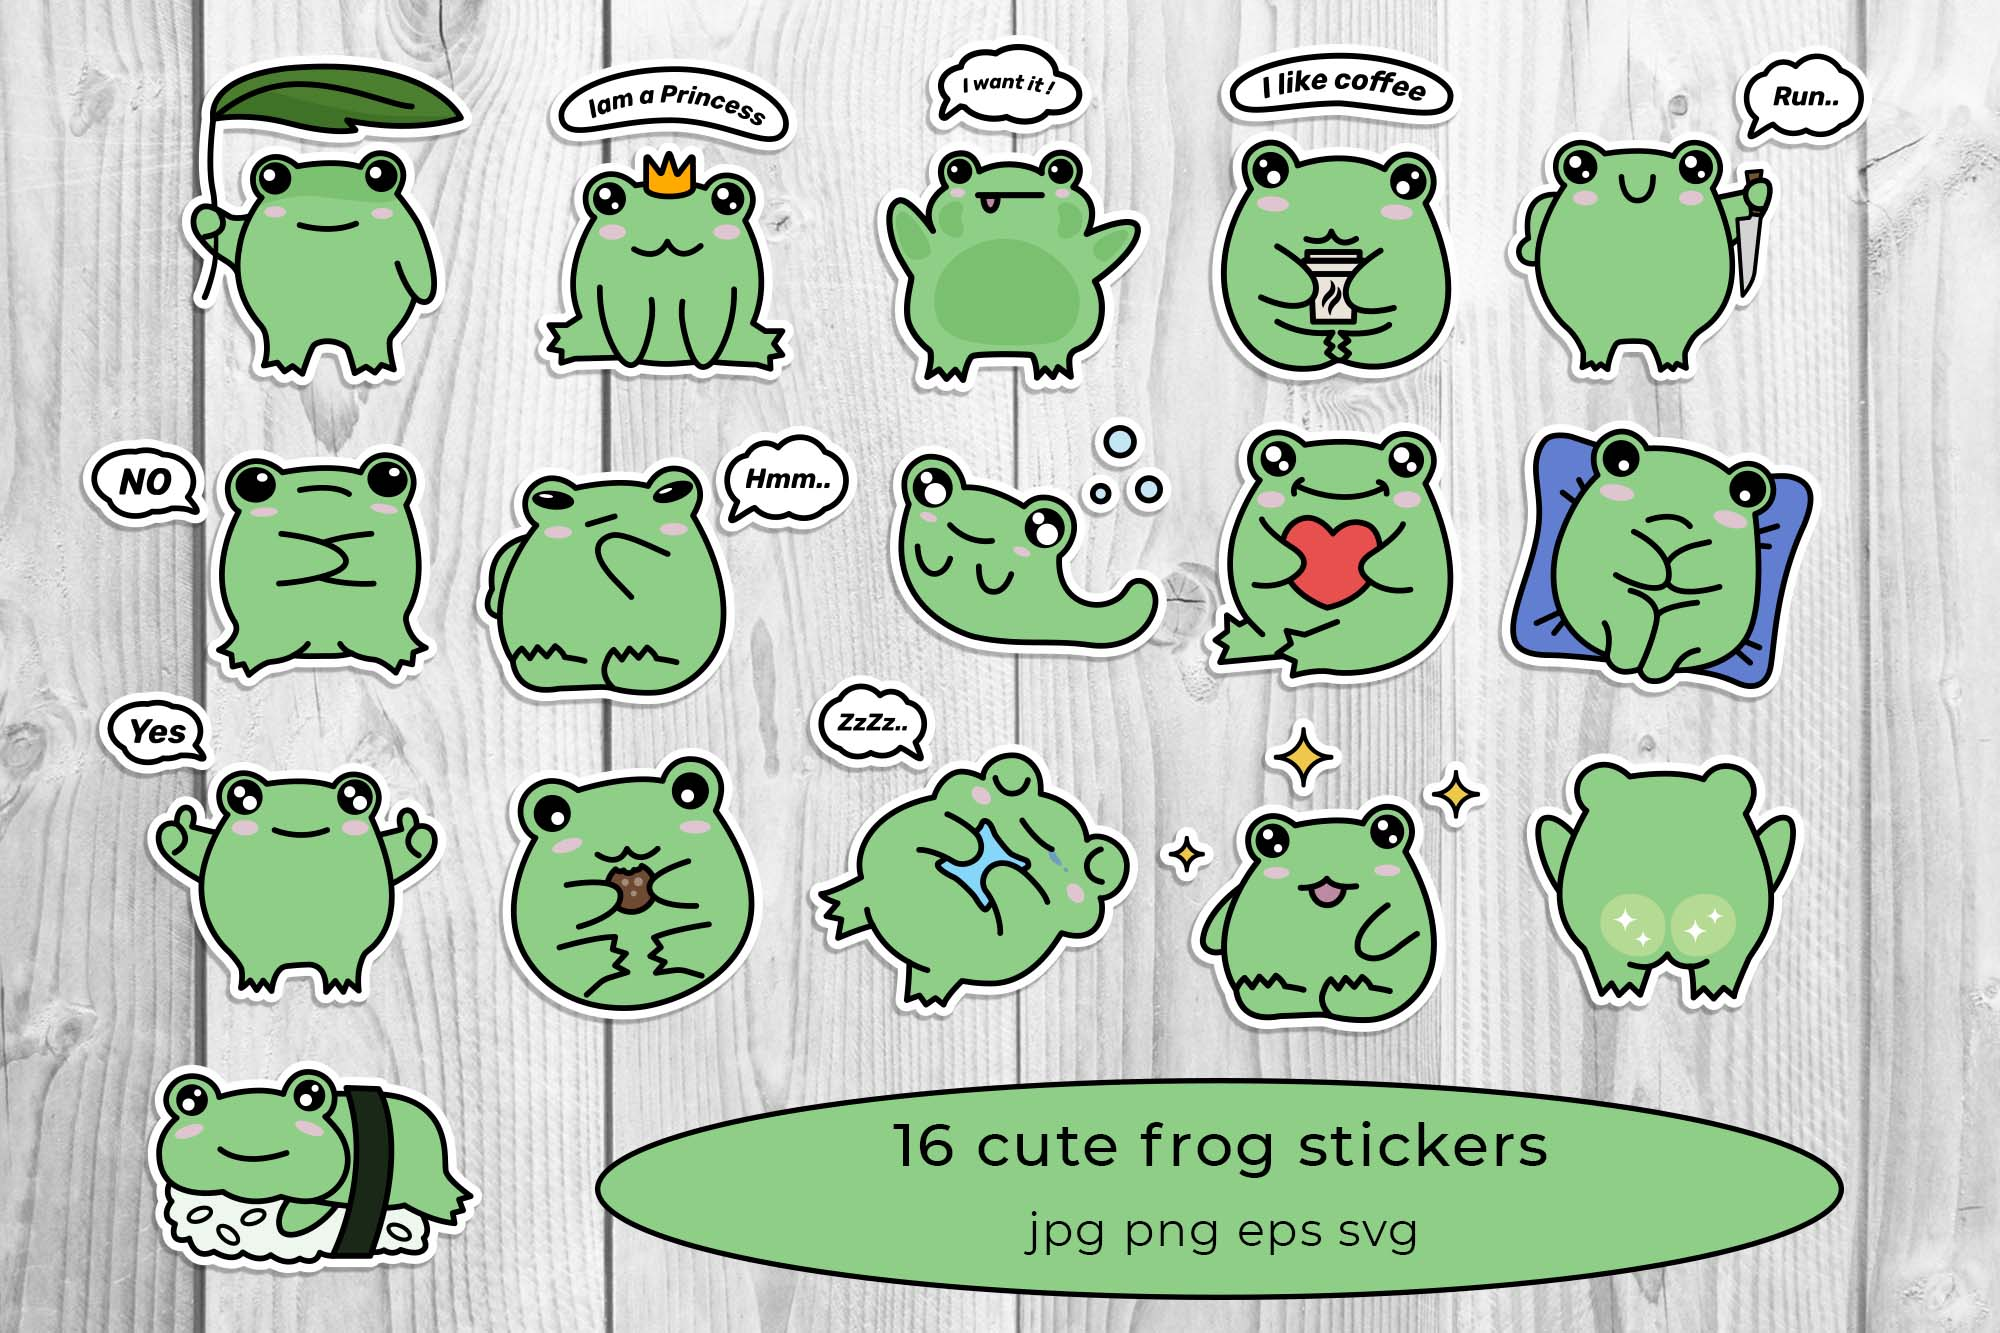 gallery of cure frog stickers.